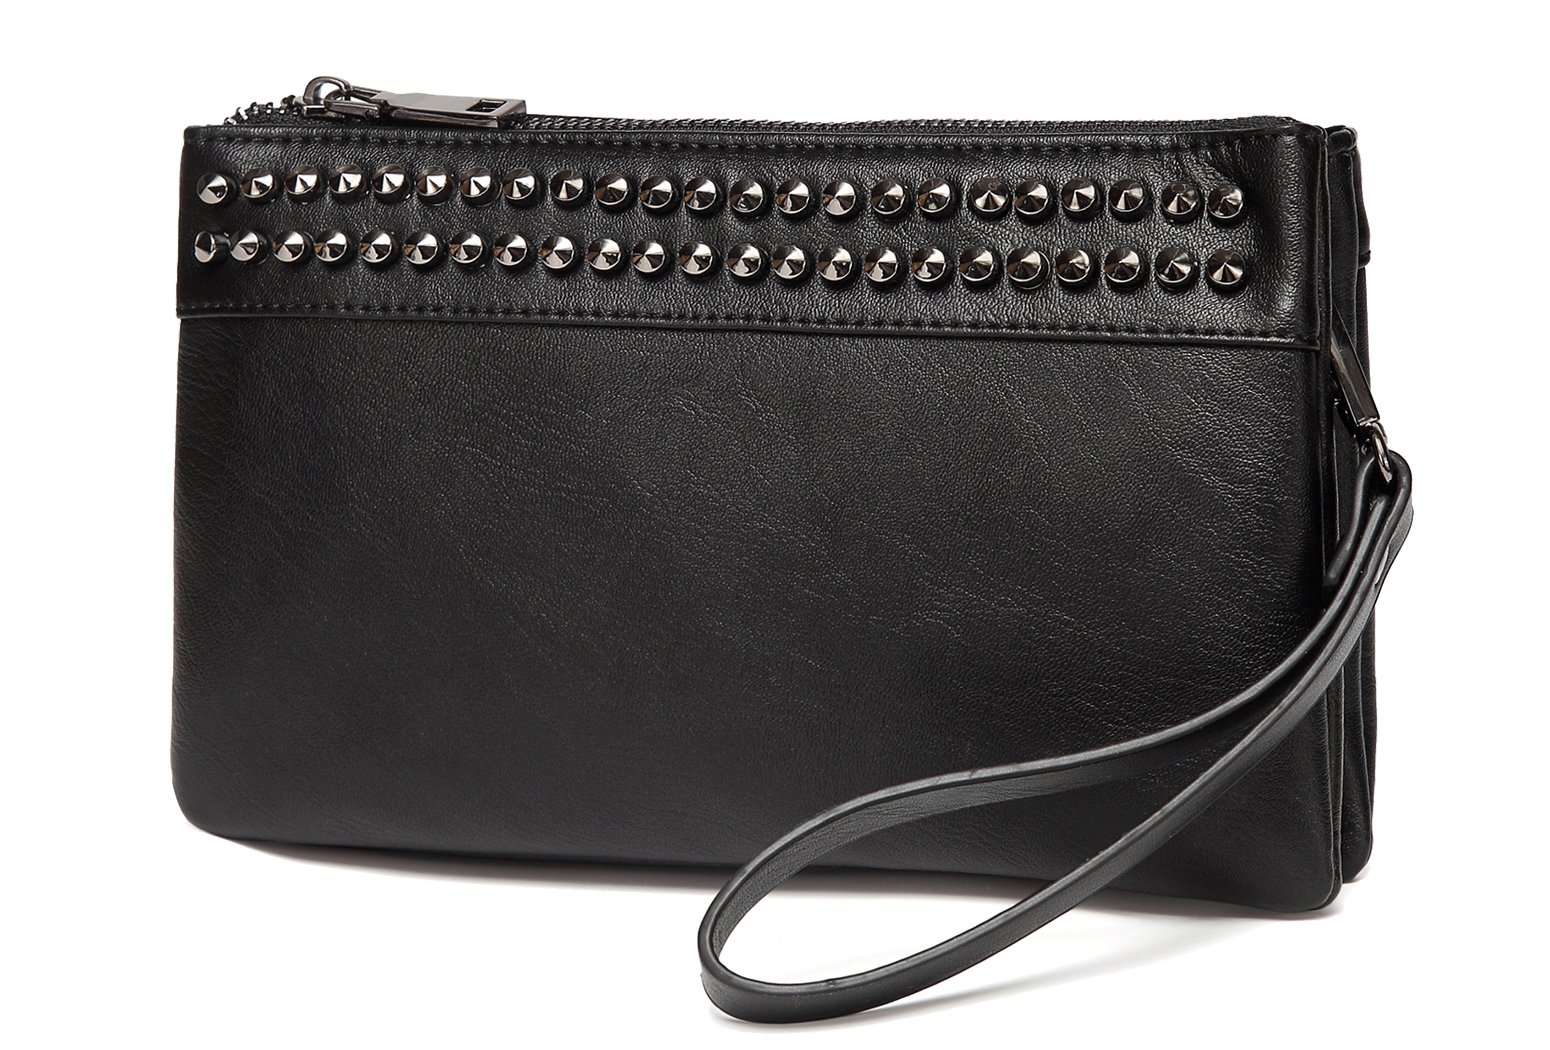 Wristlet Clutch Purses,VASCHY SAC Large Studs Soft Faux Leather Crossbody Evening Clutch Wallet for Women Black by VASCHY